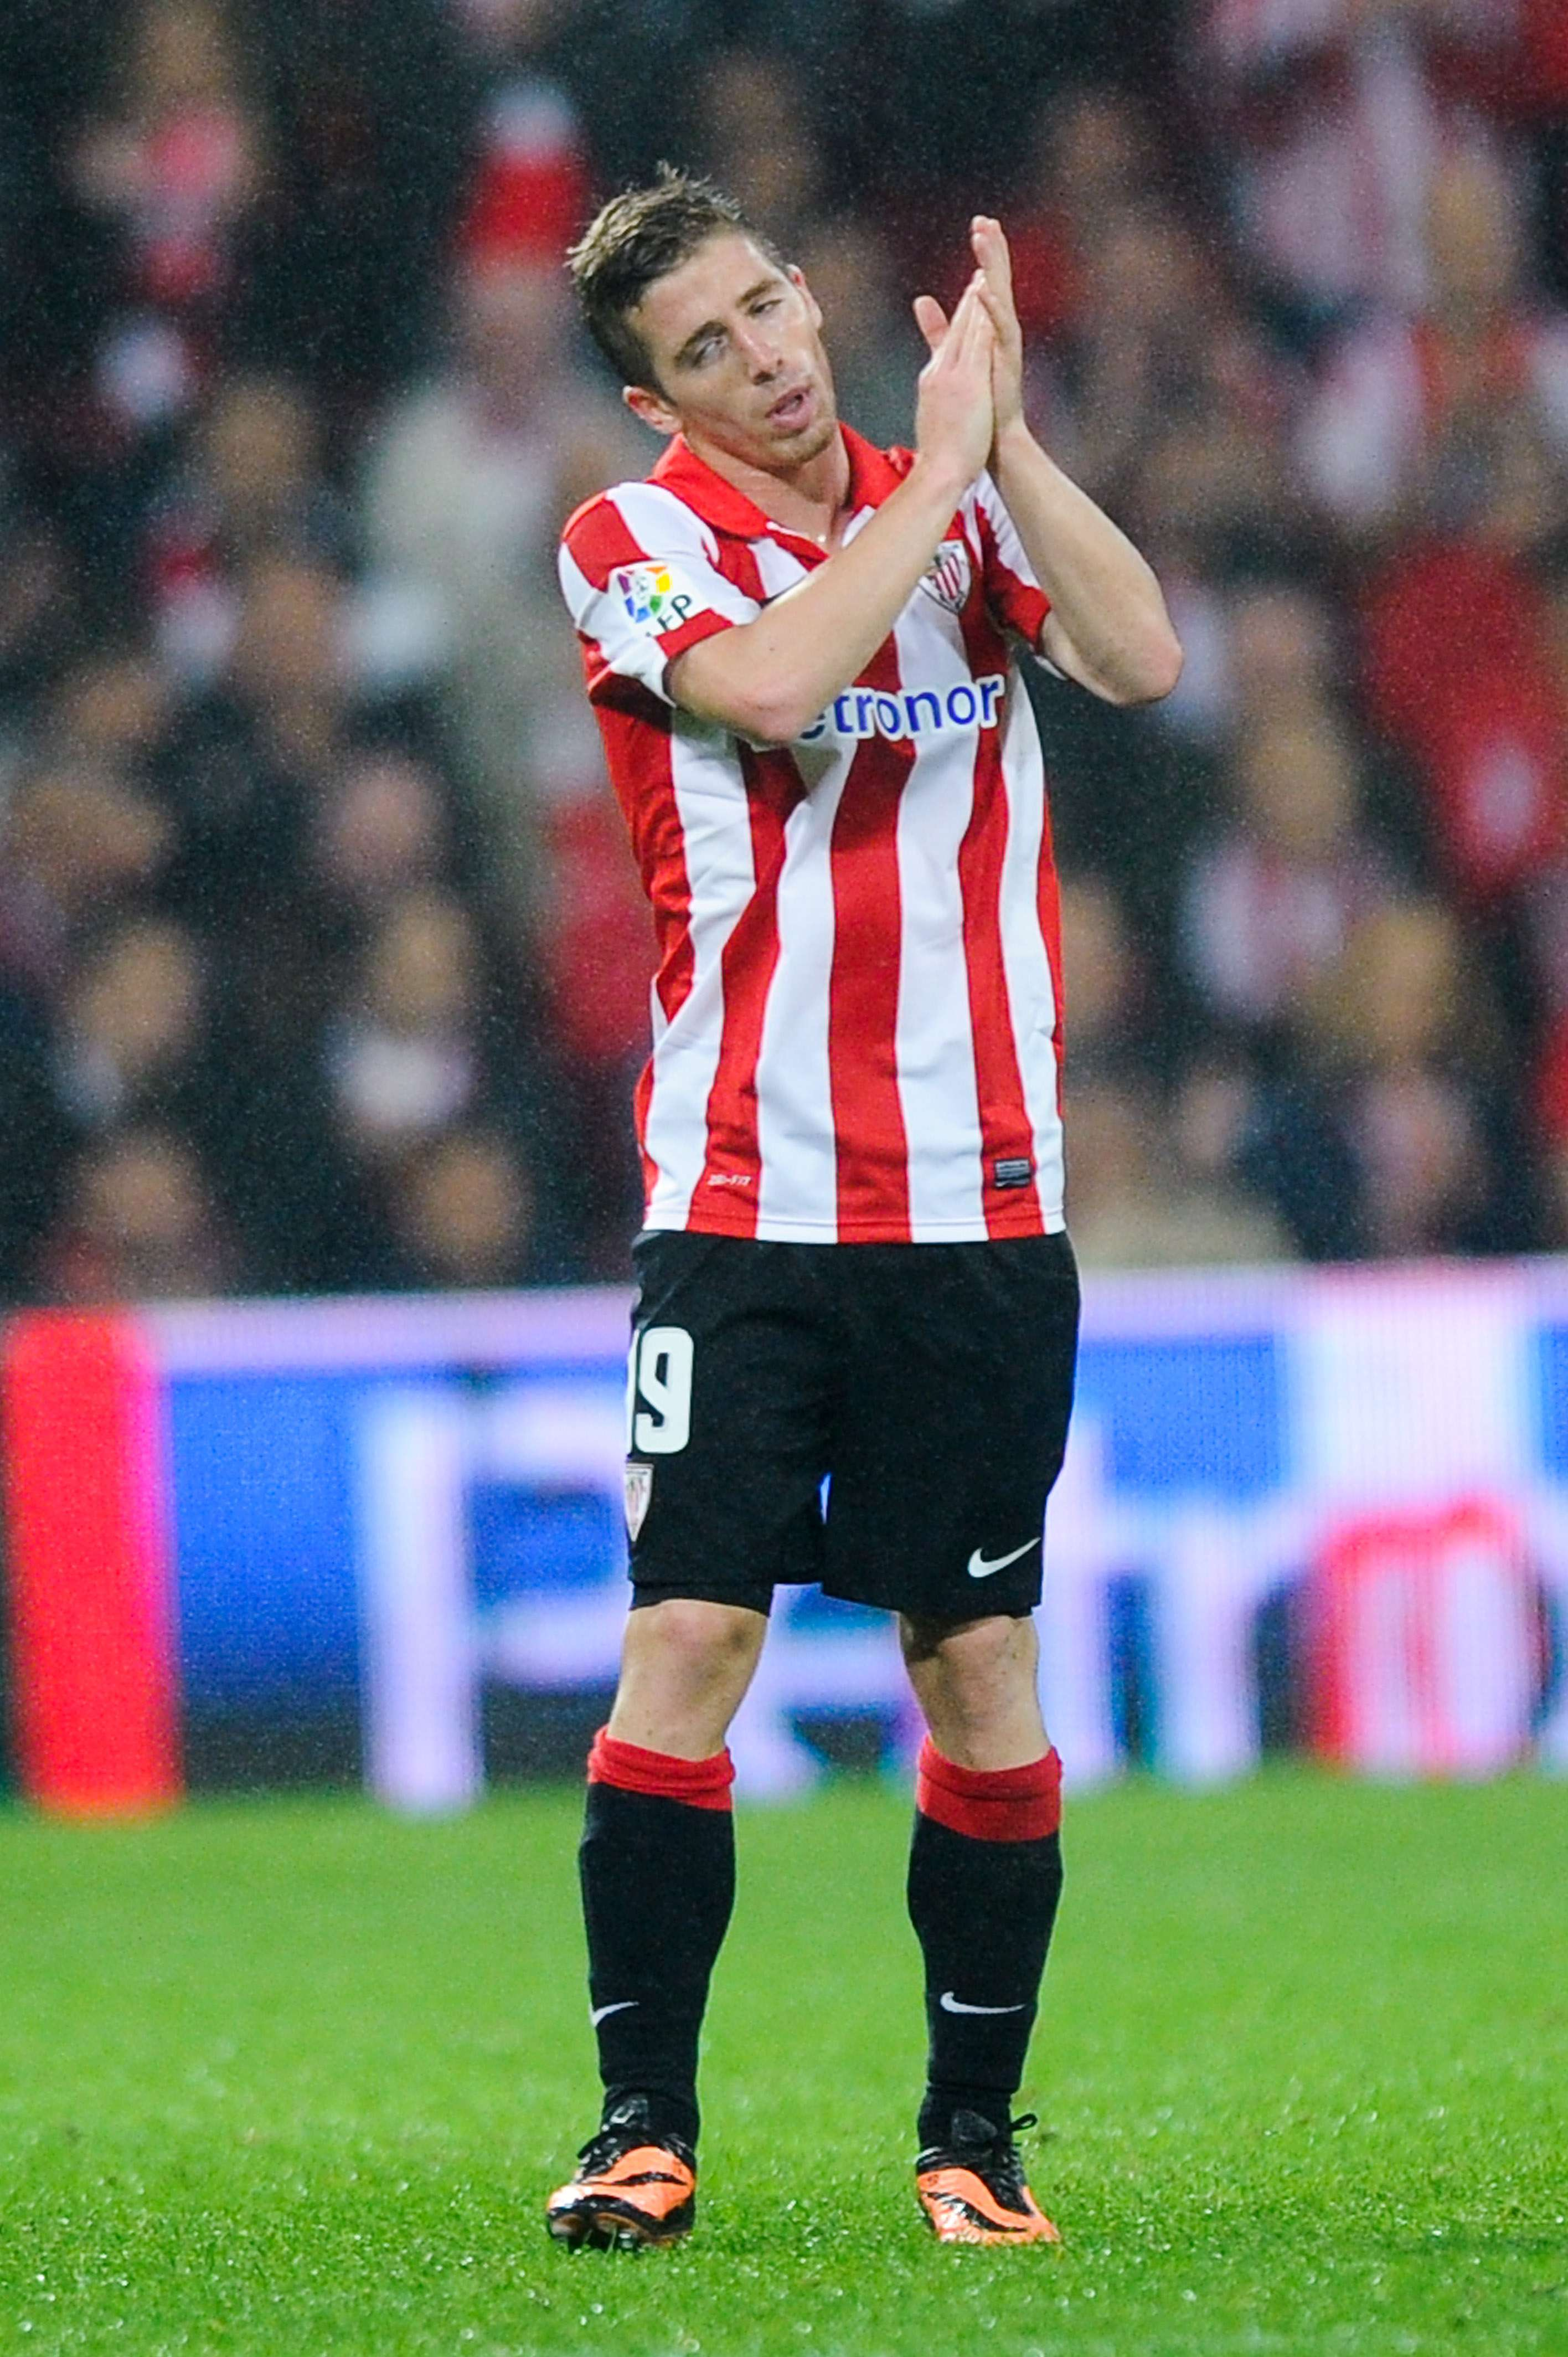 Iker Muniain renueva con el Athletic hasta 2017